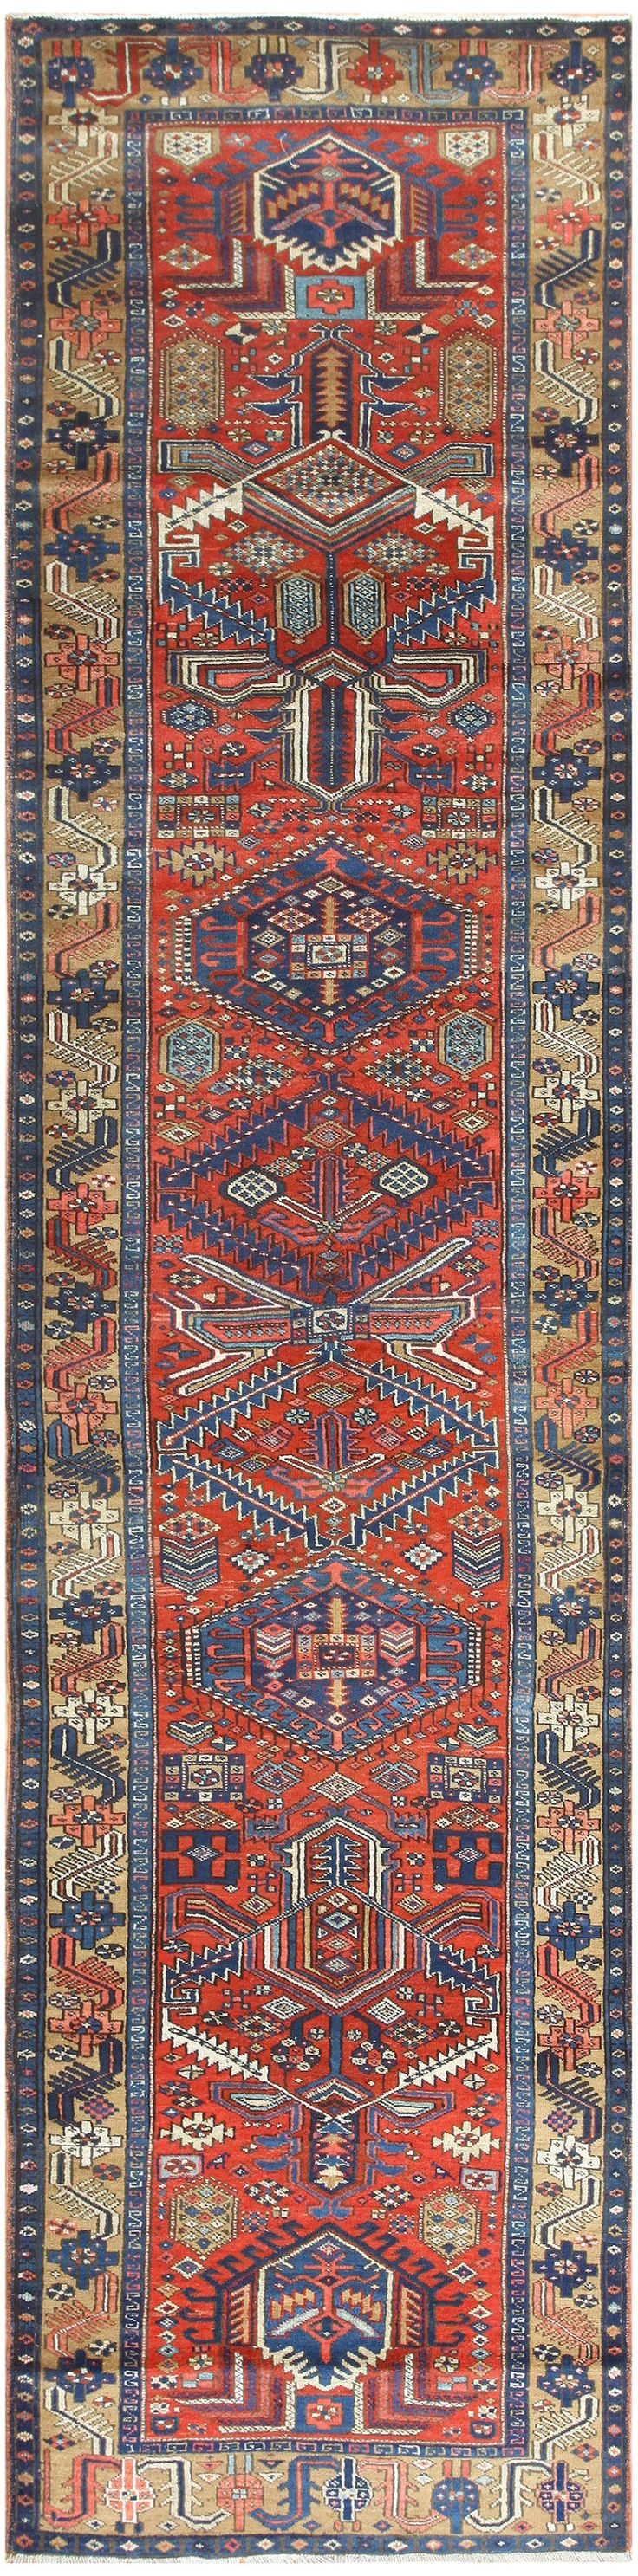 286 Best Images About Runners On Pinterest 40 Years Old Runners Inside Persian Carpet Runners (View 15 of 15)